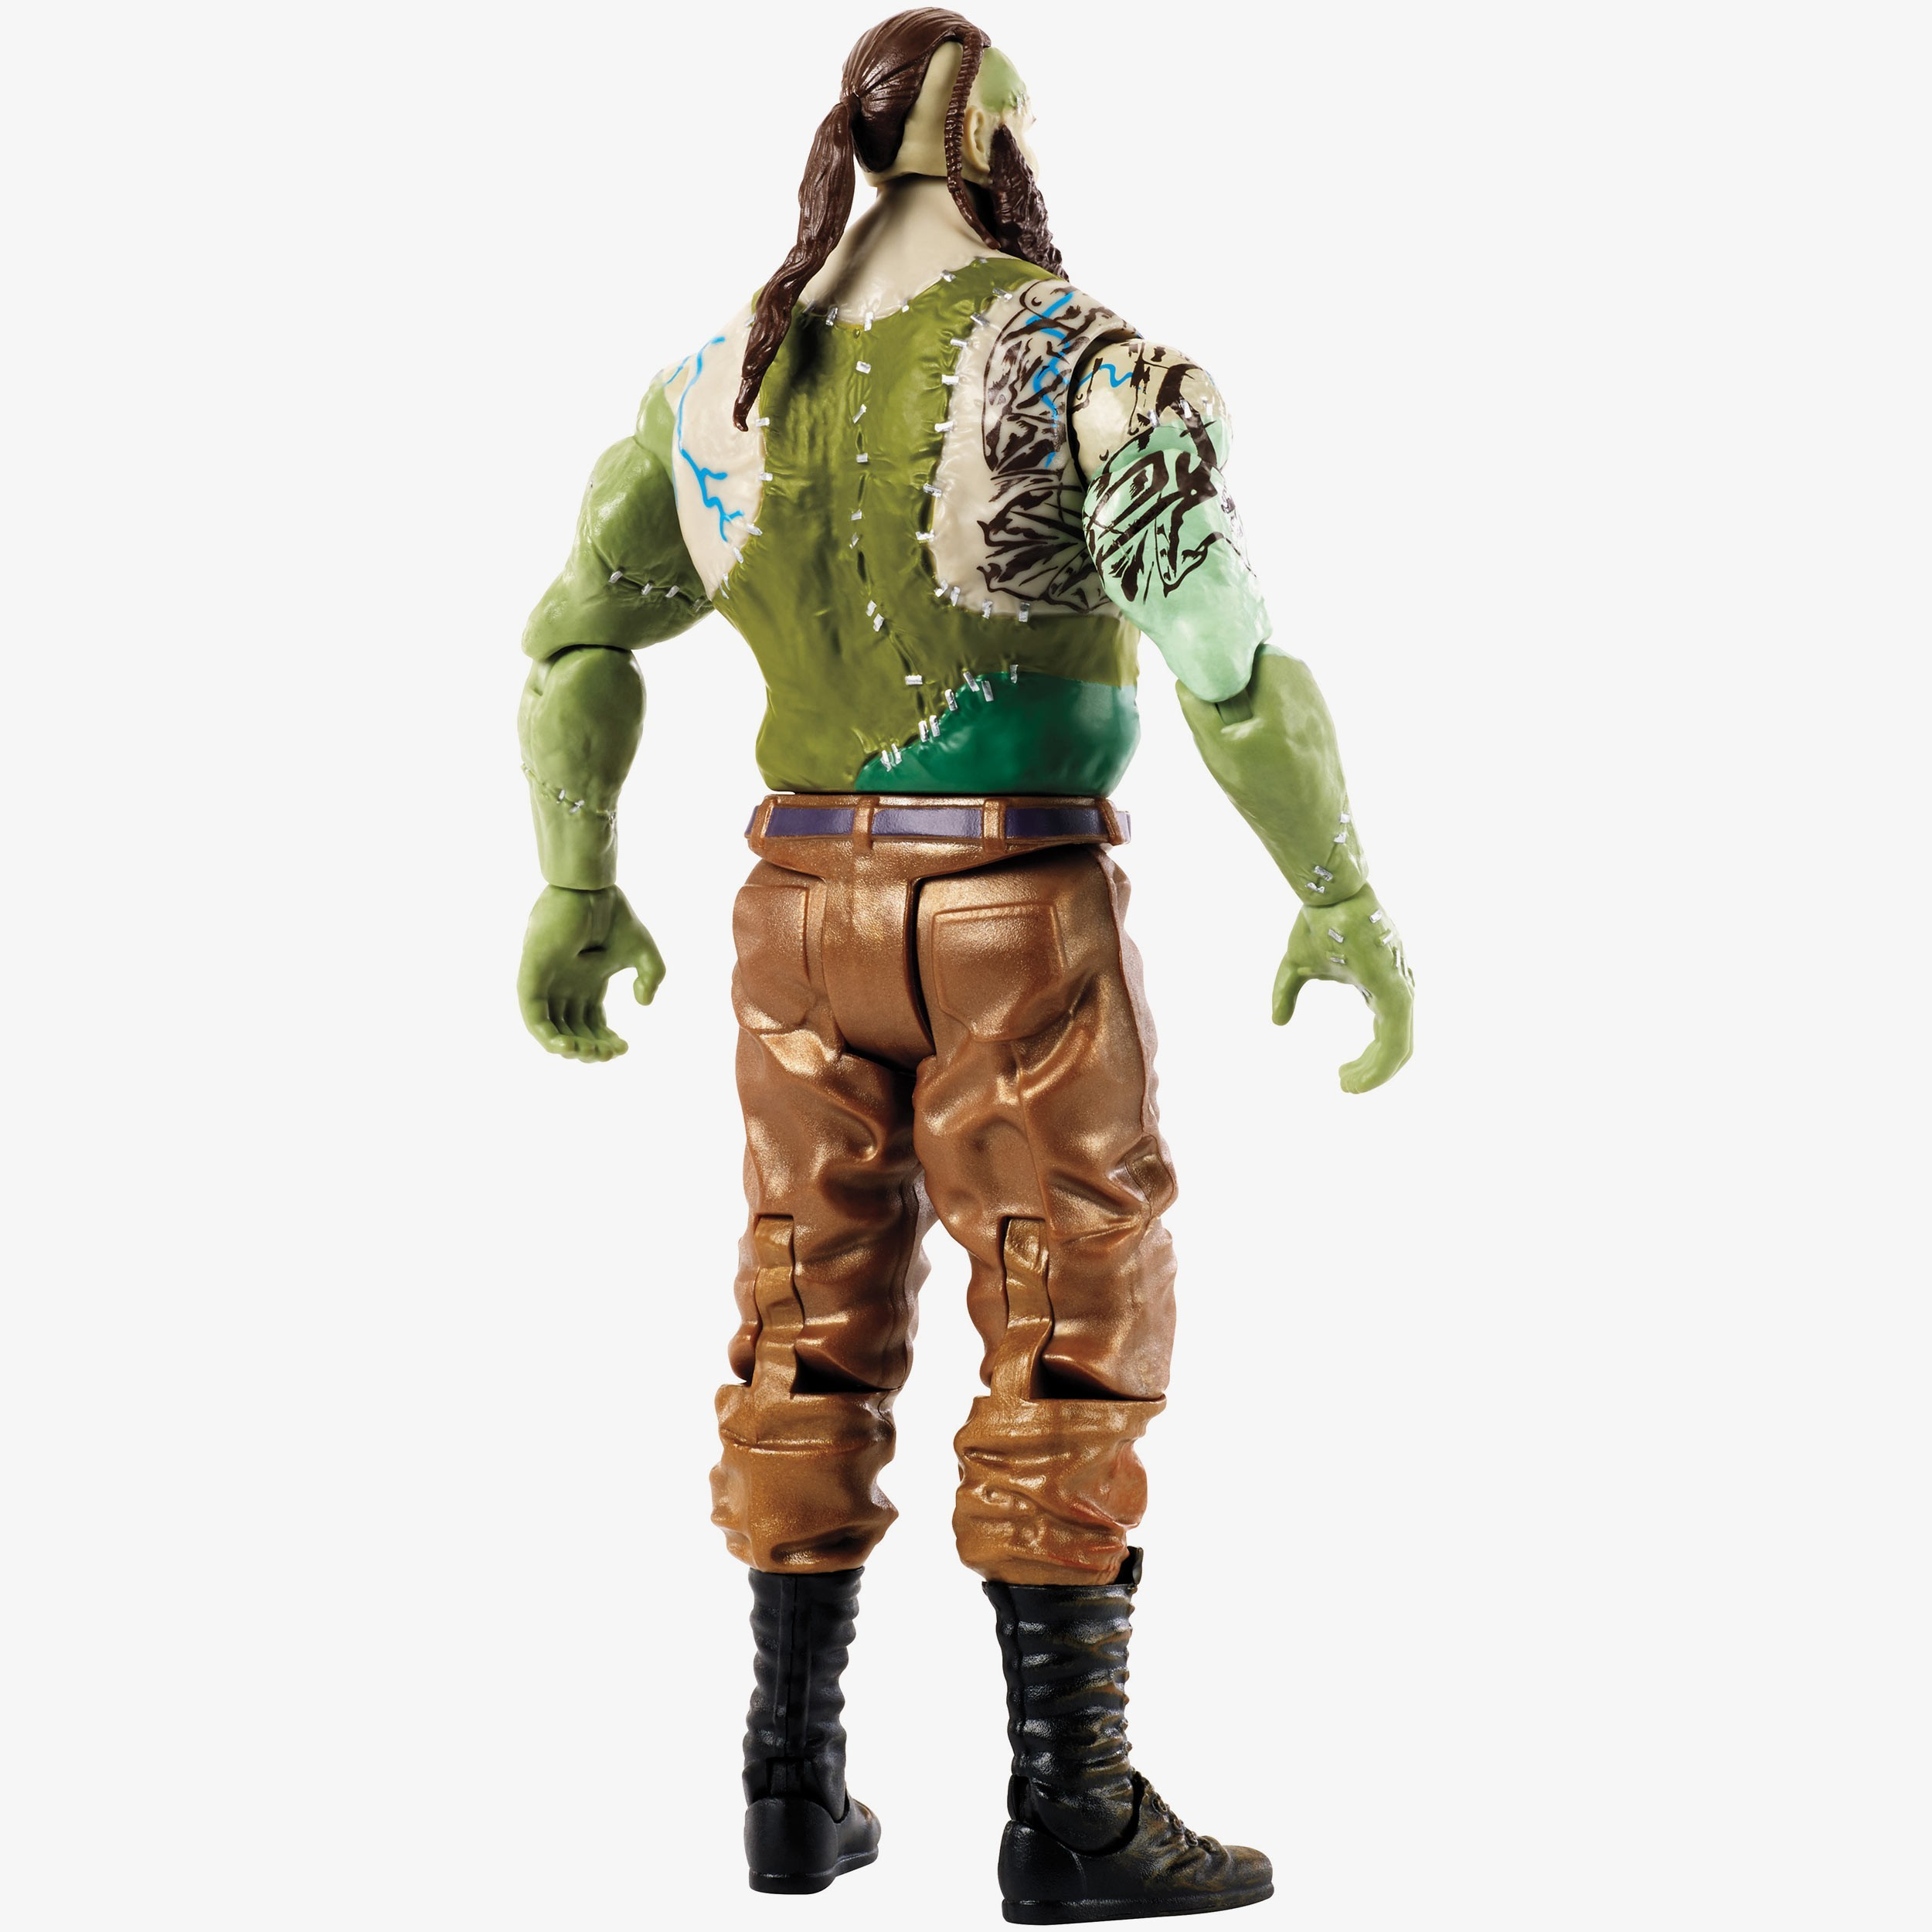 Braun Strowman WWE Monsters Series 1